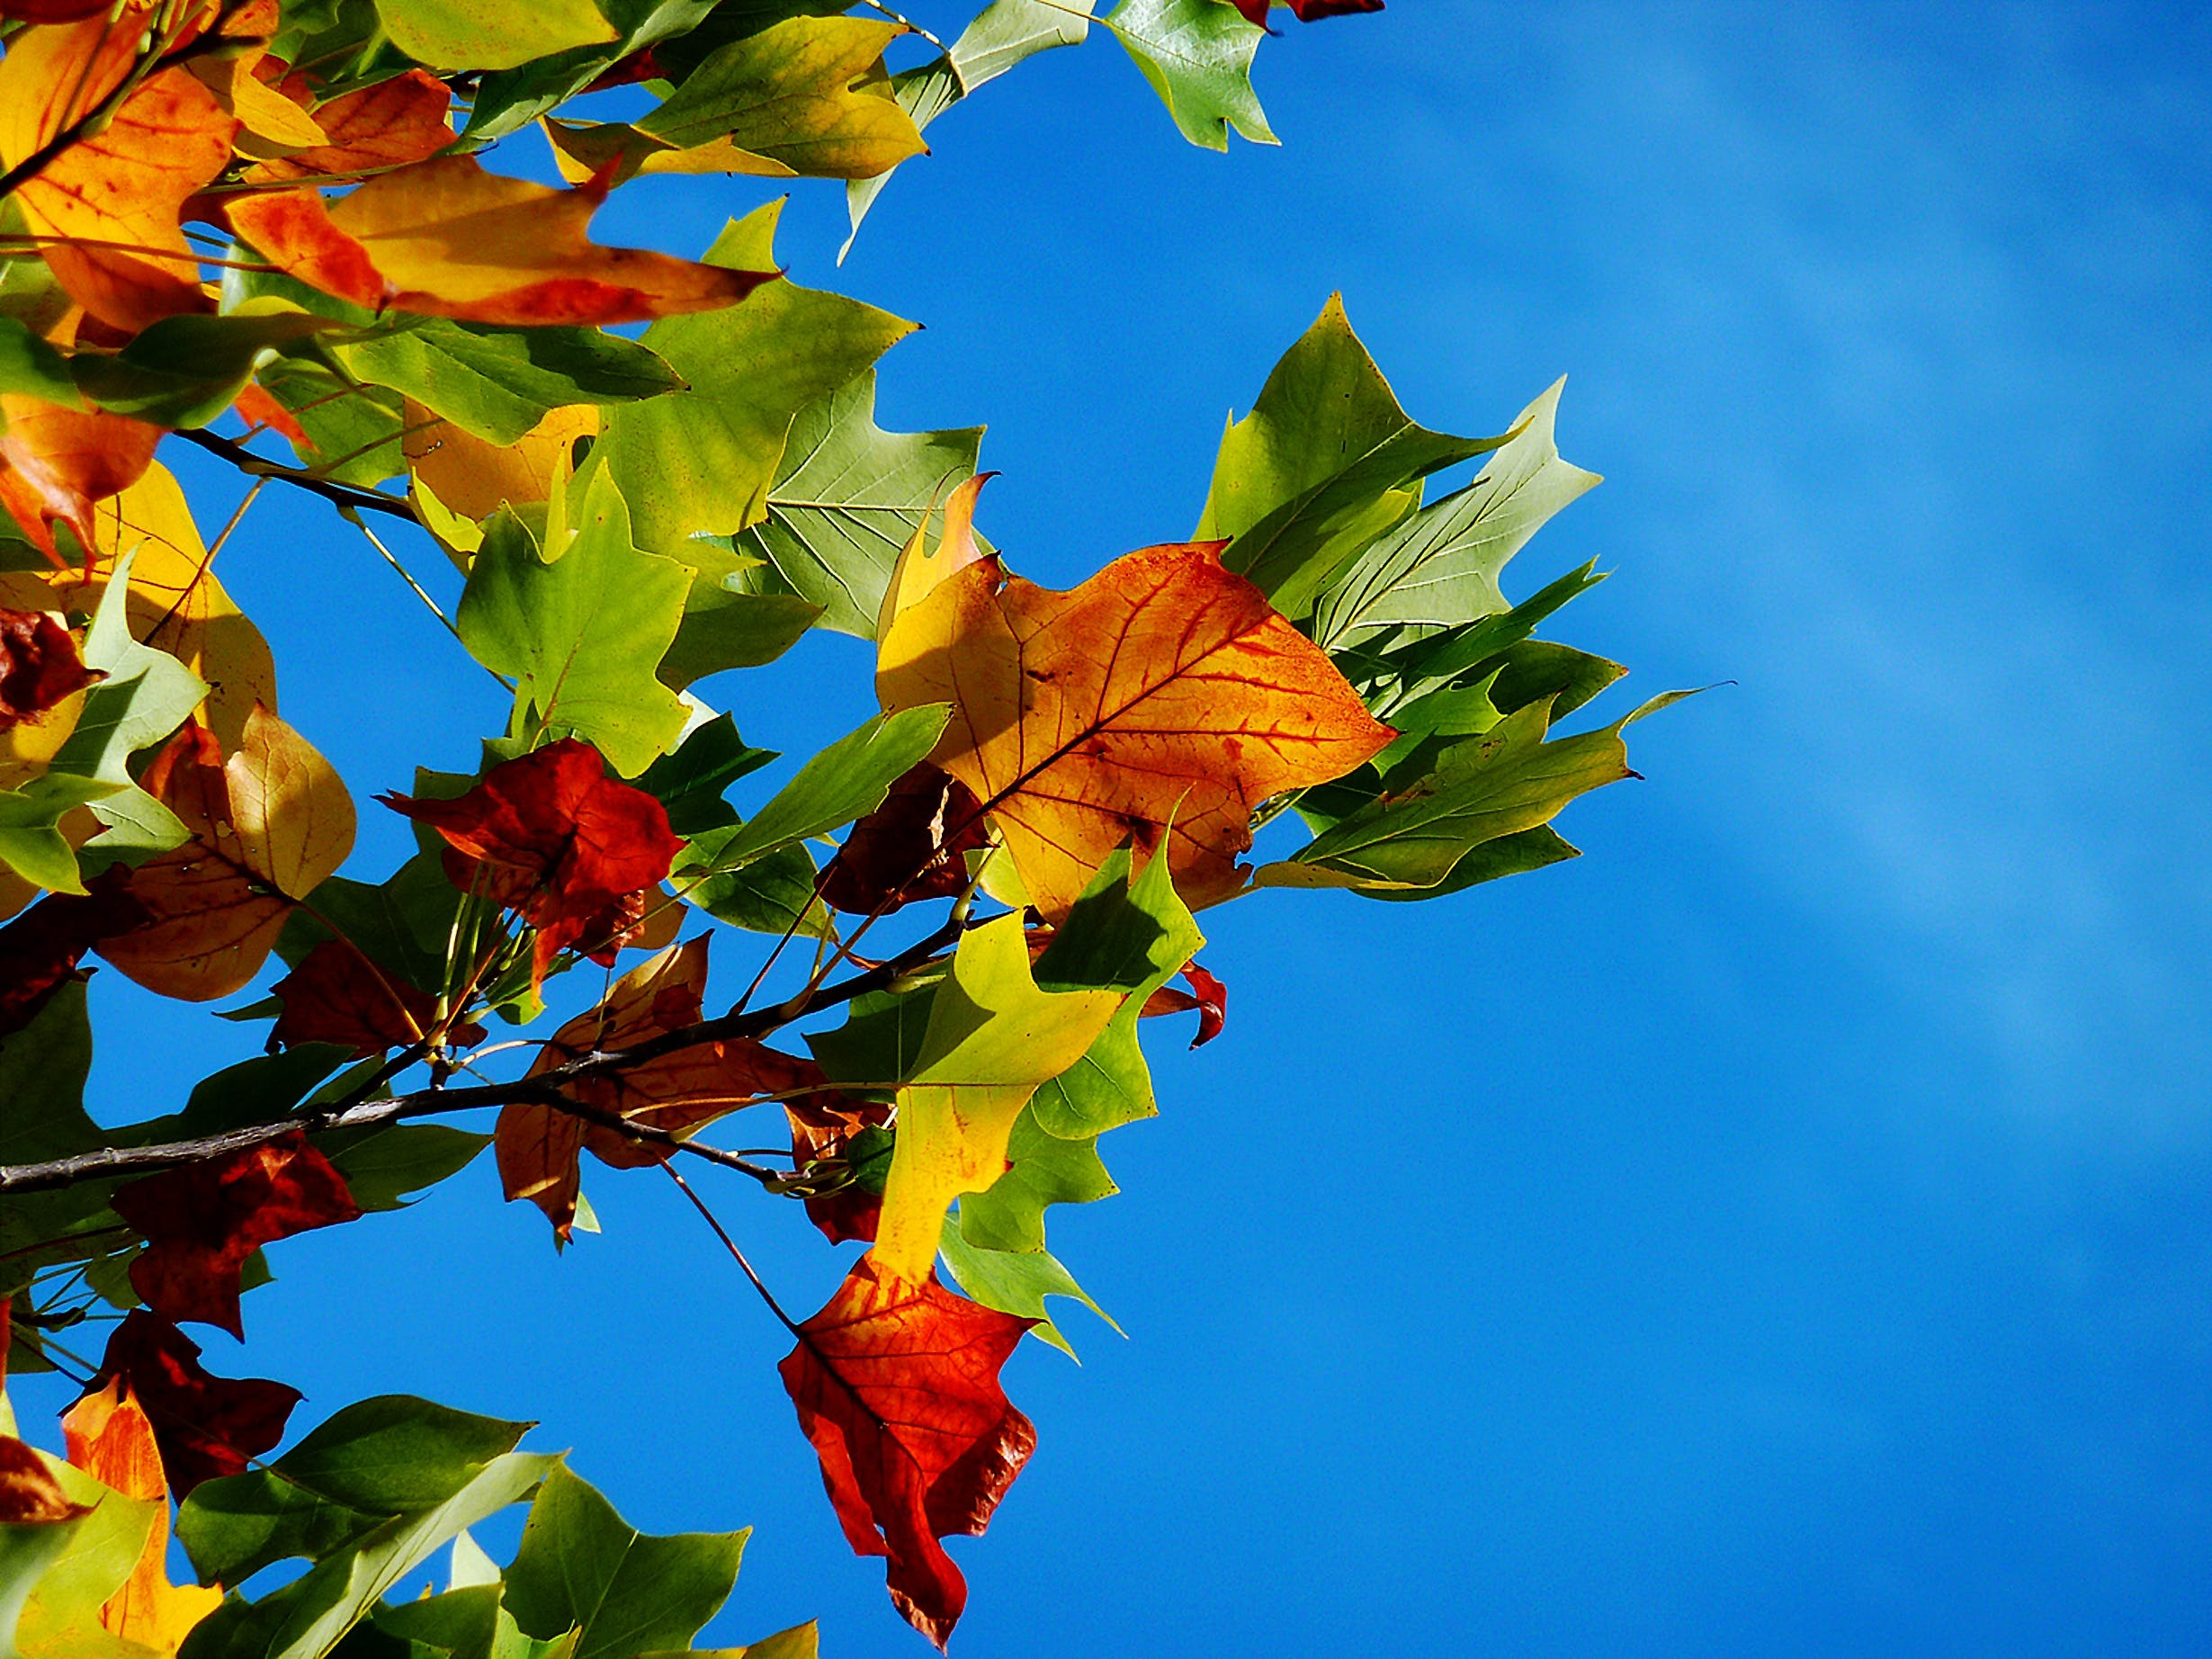 Red Orange and Green Leaves during Daytime